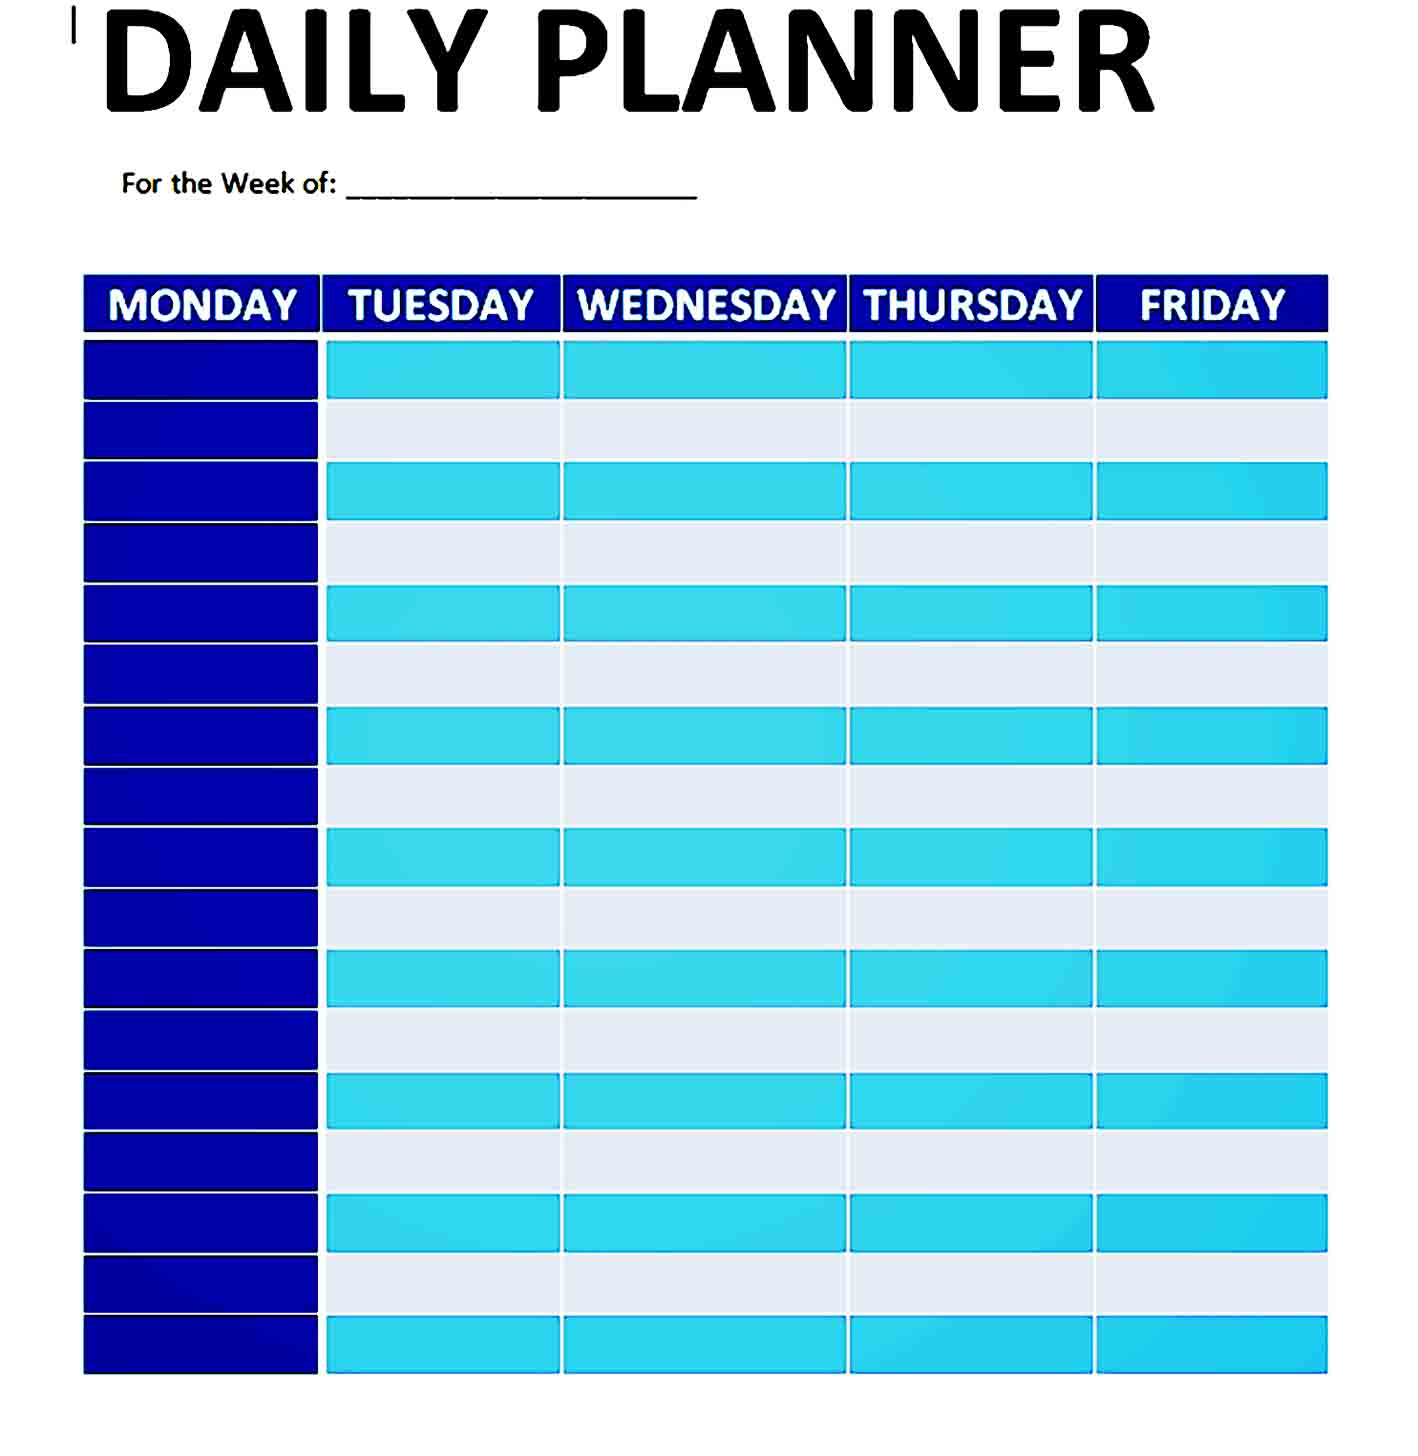 daily planner template 21